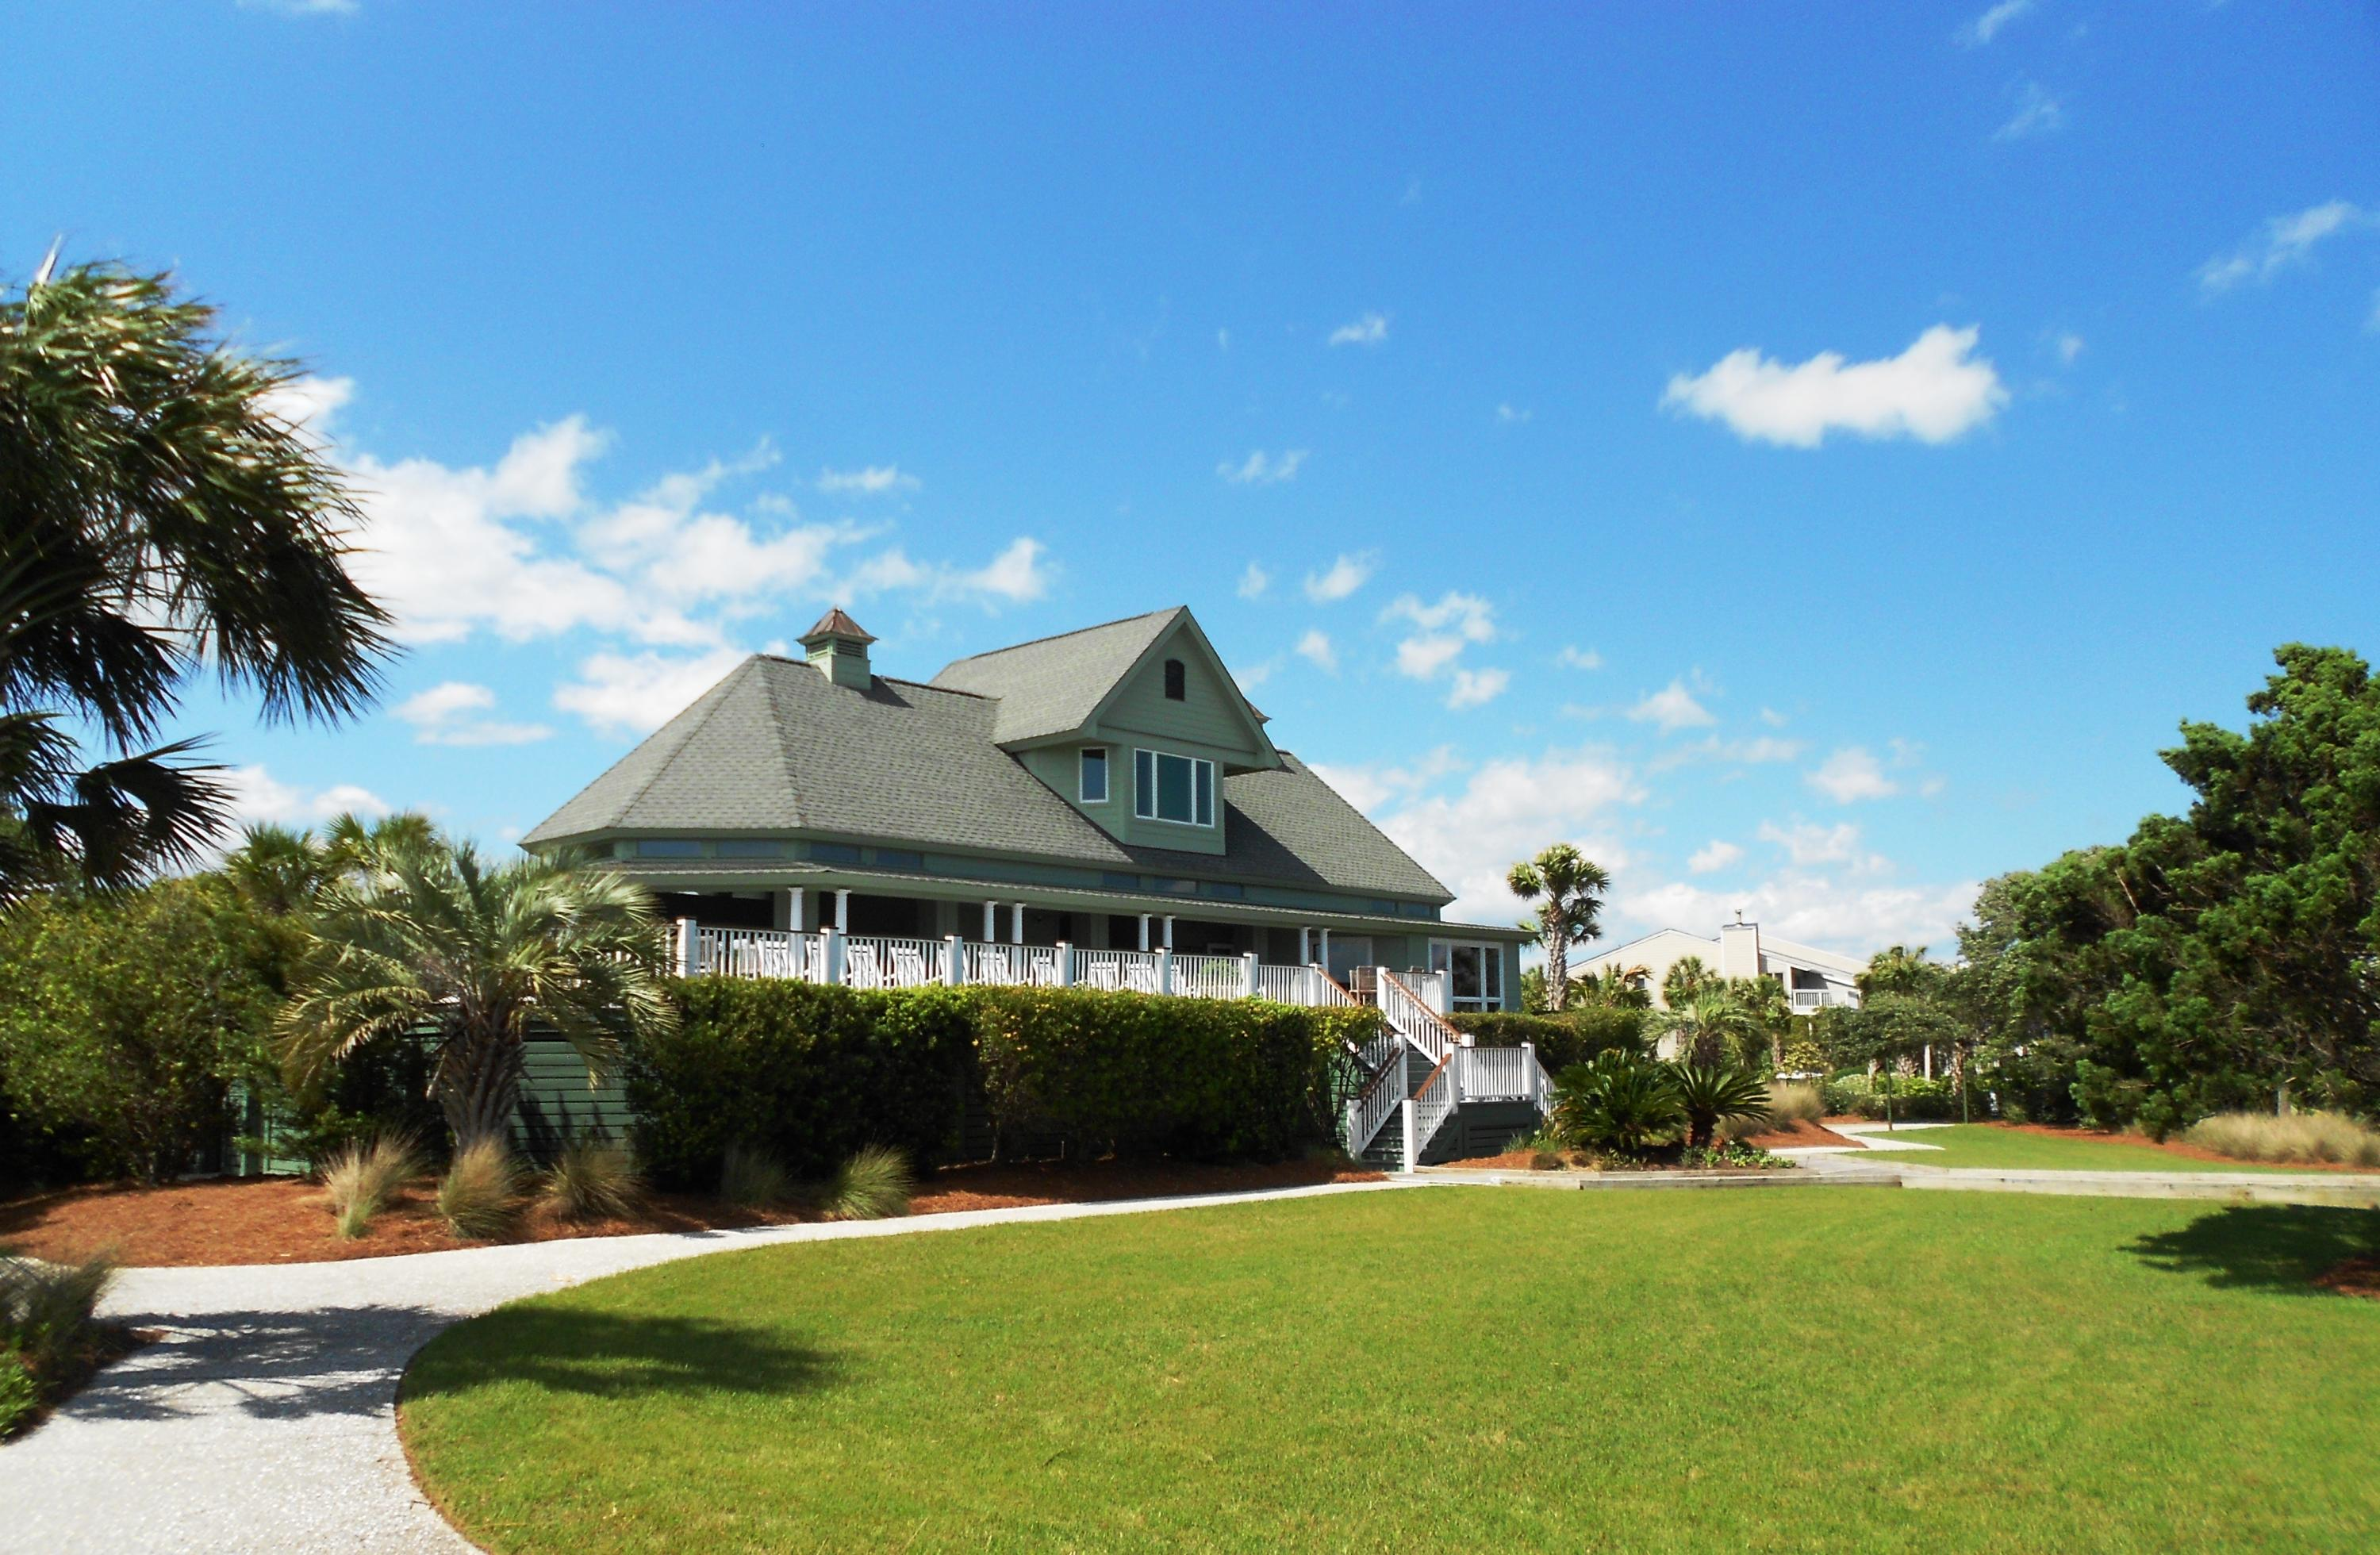 302 A Shipwatch UNIT Share #4 Isle Of Palms, SC 29451